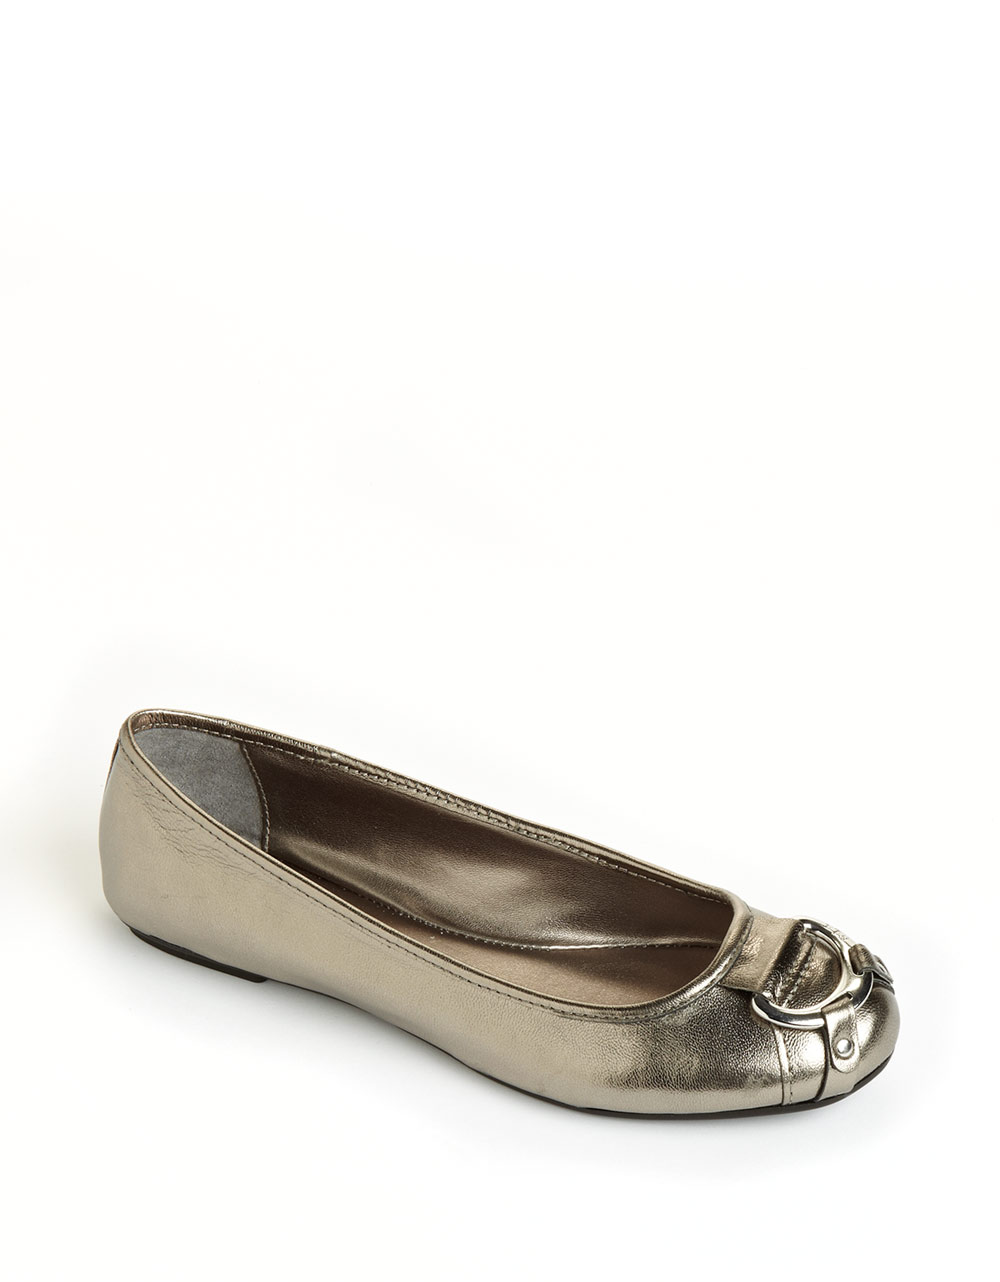 lauren by ralph lauren abigale leather ballet flats in gold pewter leather lyst. Black Bedroom Furniture Sets. Home Design Ideas